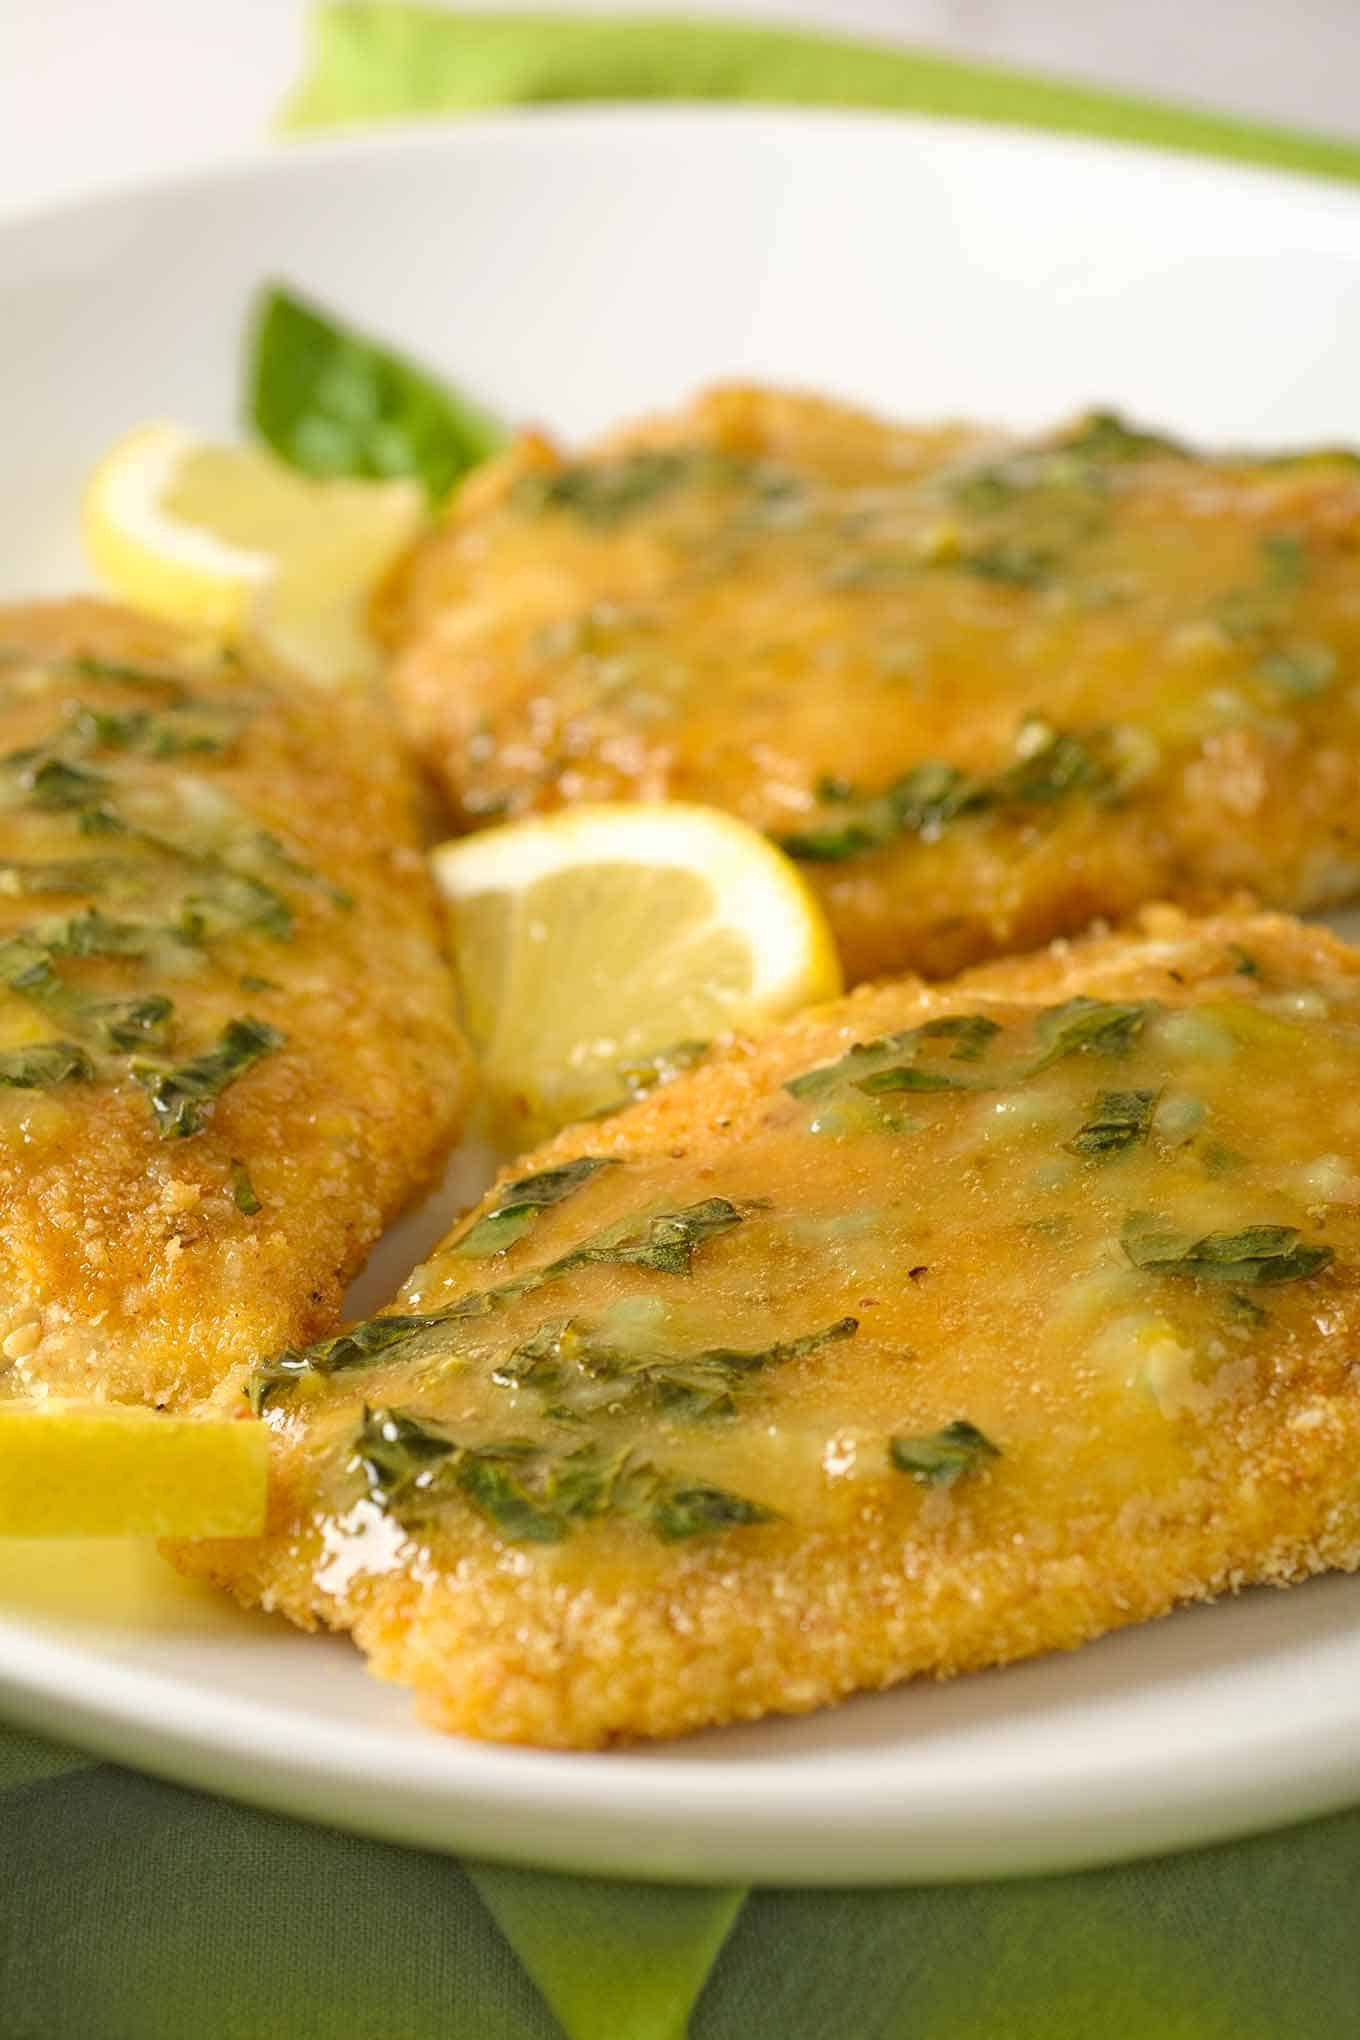 How To Make Oven-Fried Fish